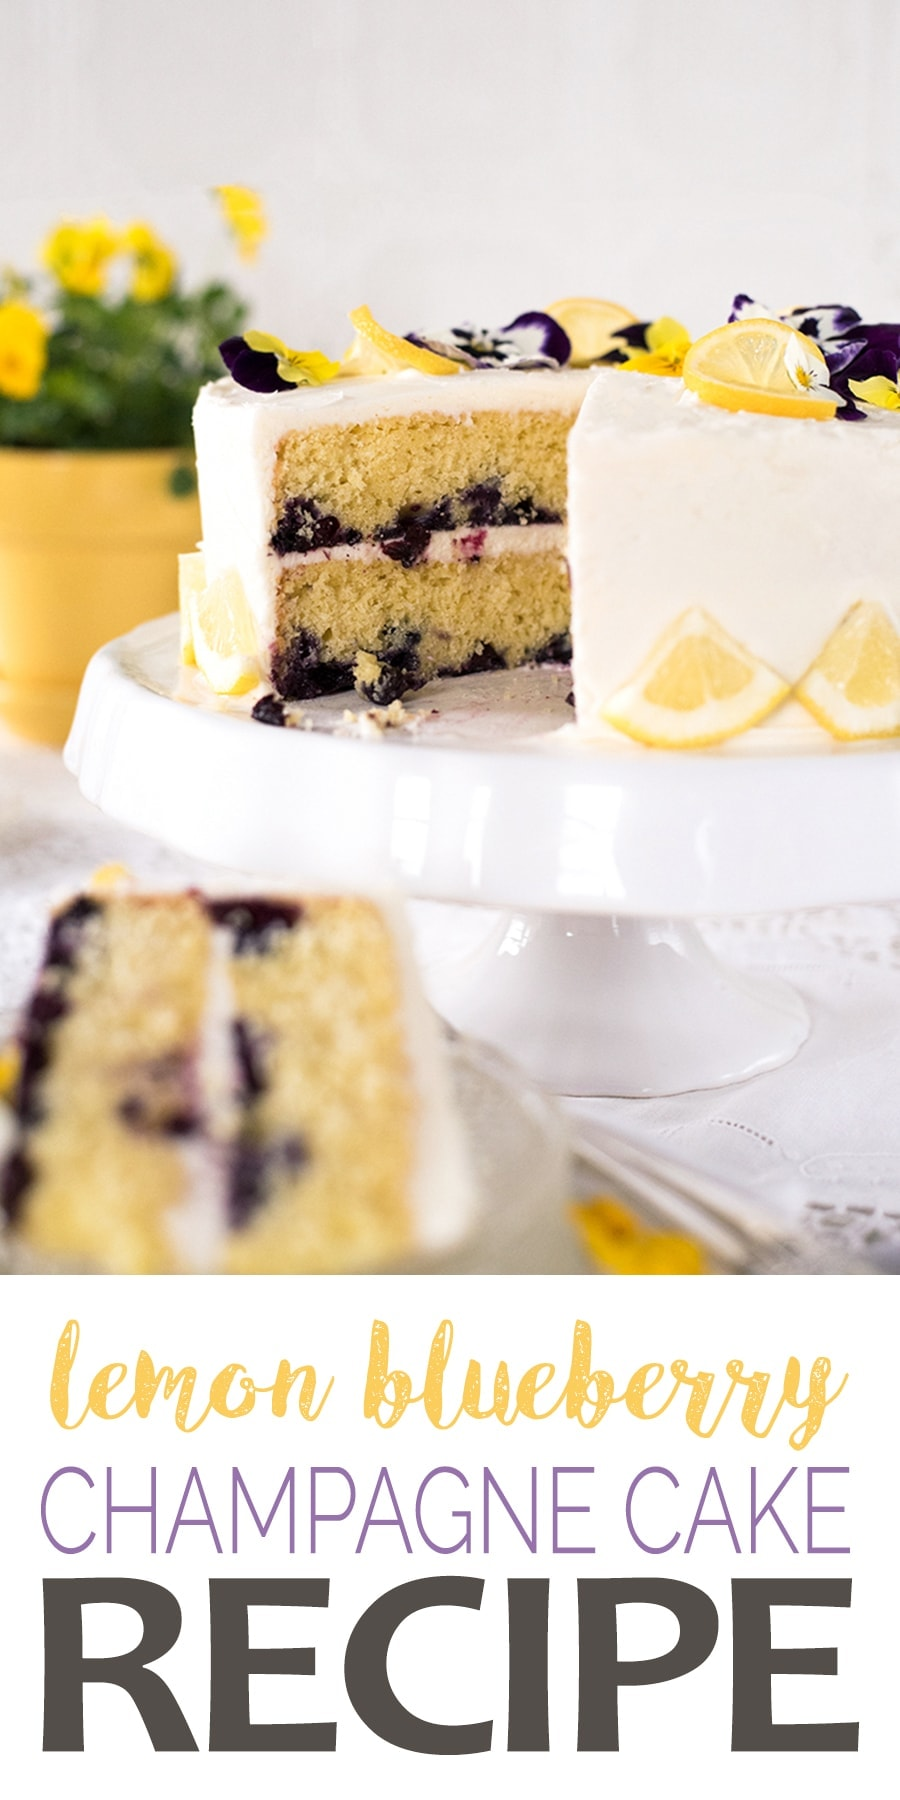 Lemon Blueberry Champagne Cake - Champagne Lemon Blueberry Cake with Cream Cheese Frosting